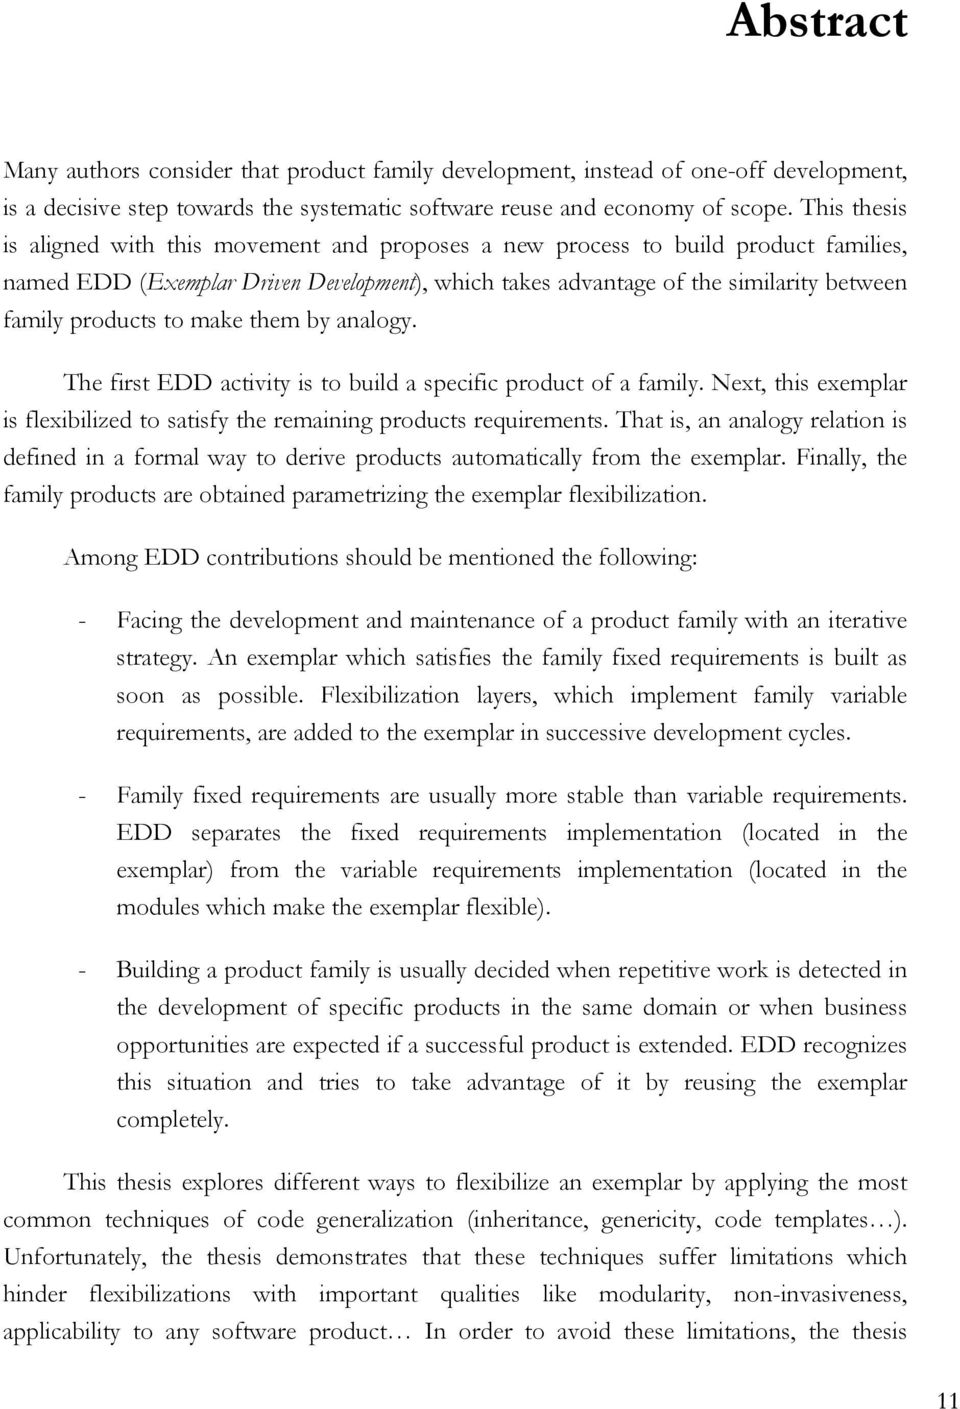 products to make them by analogy. The first EDD activity is to build a specific product of a family. Next, this exemplar is flexibilized to satisfy the remaining products requirements.